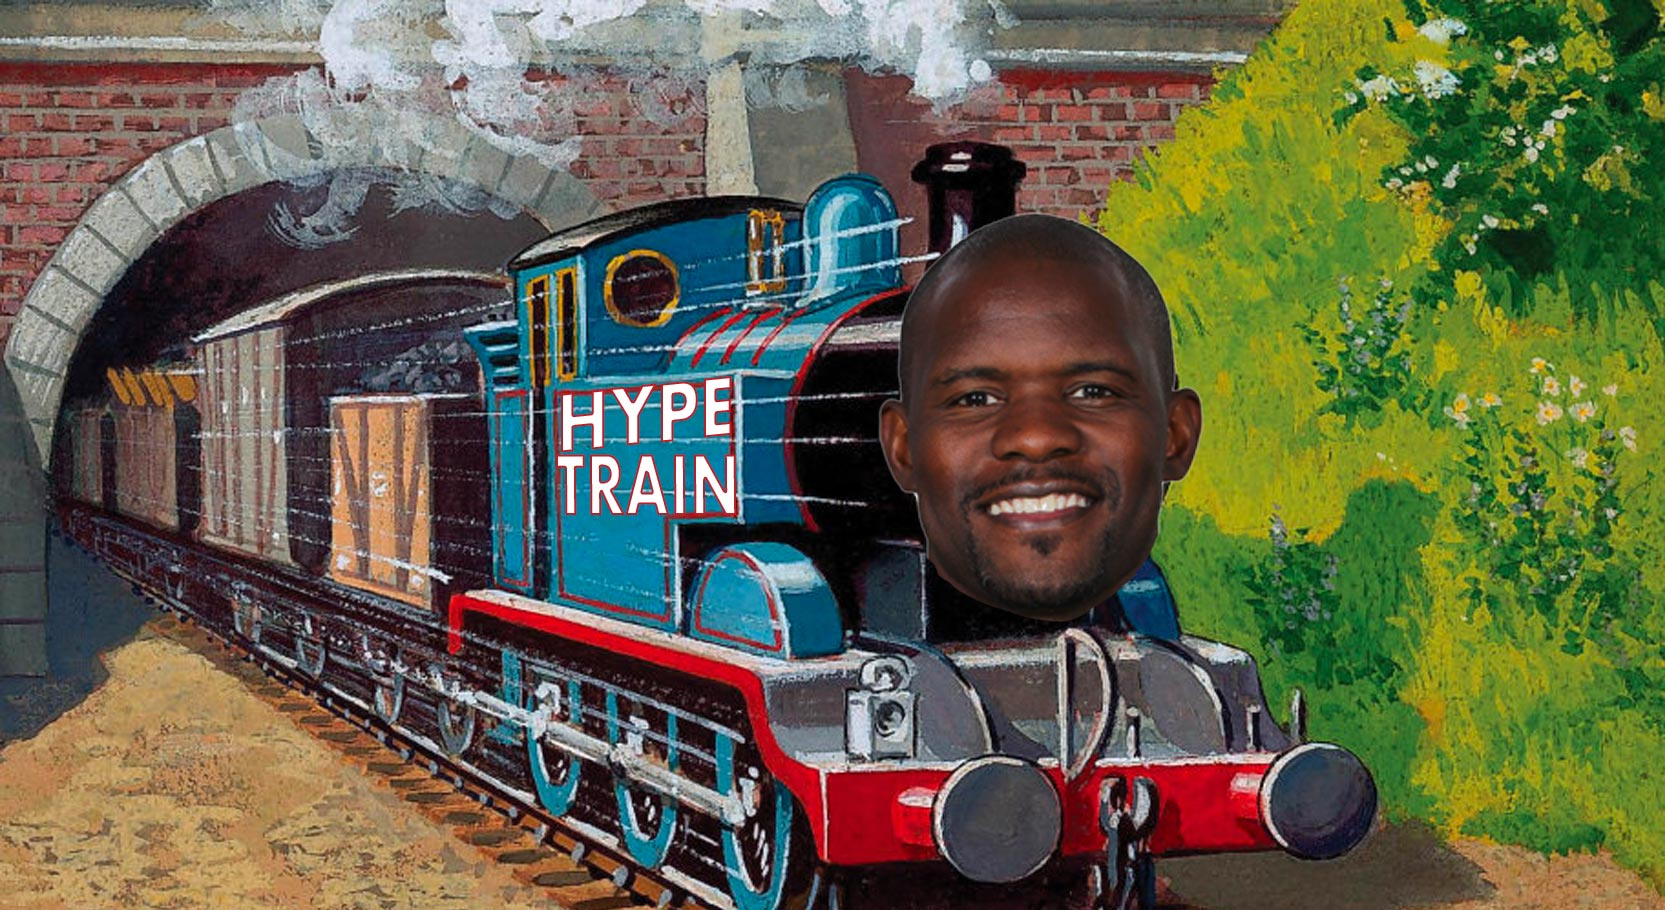 All aboard the hype train.